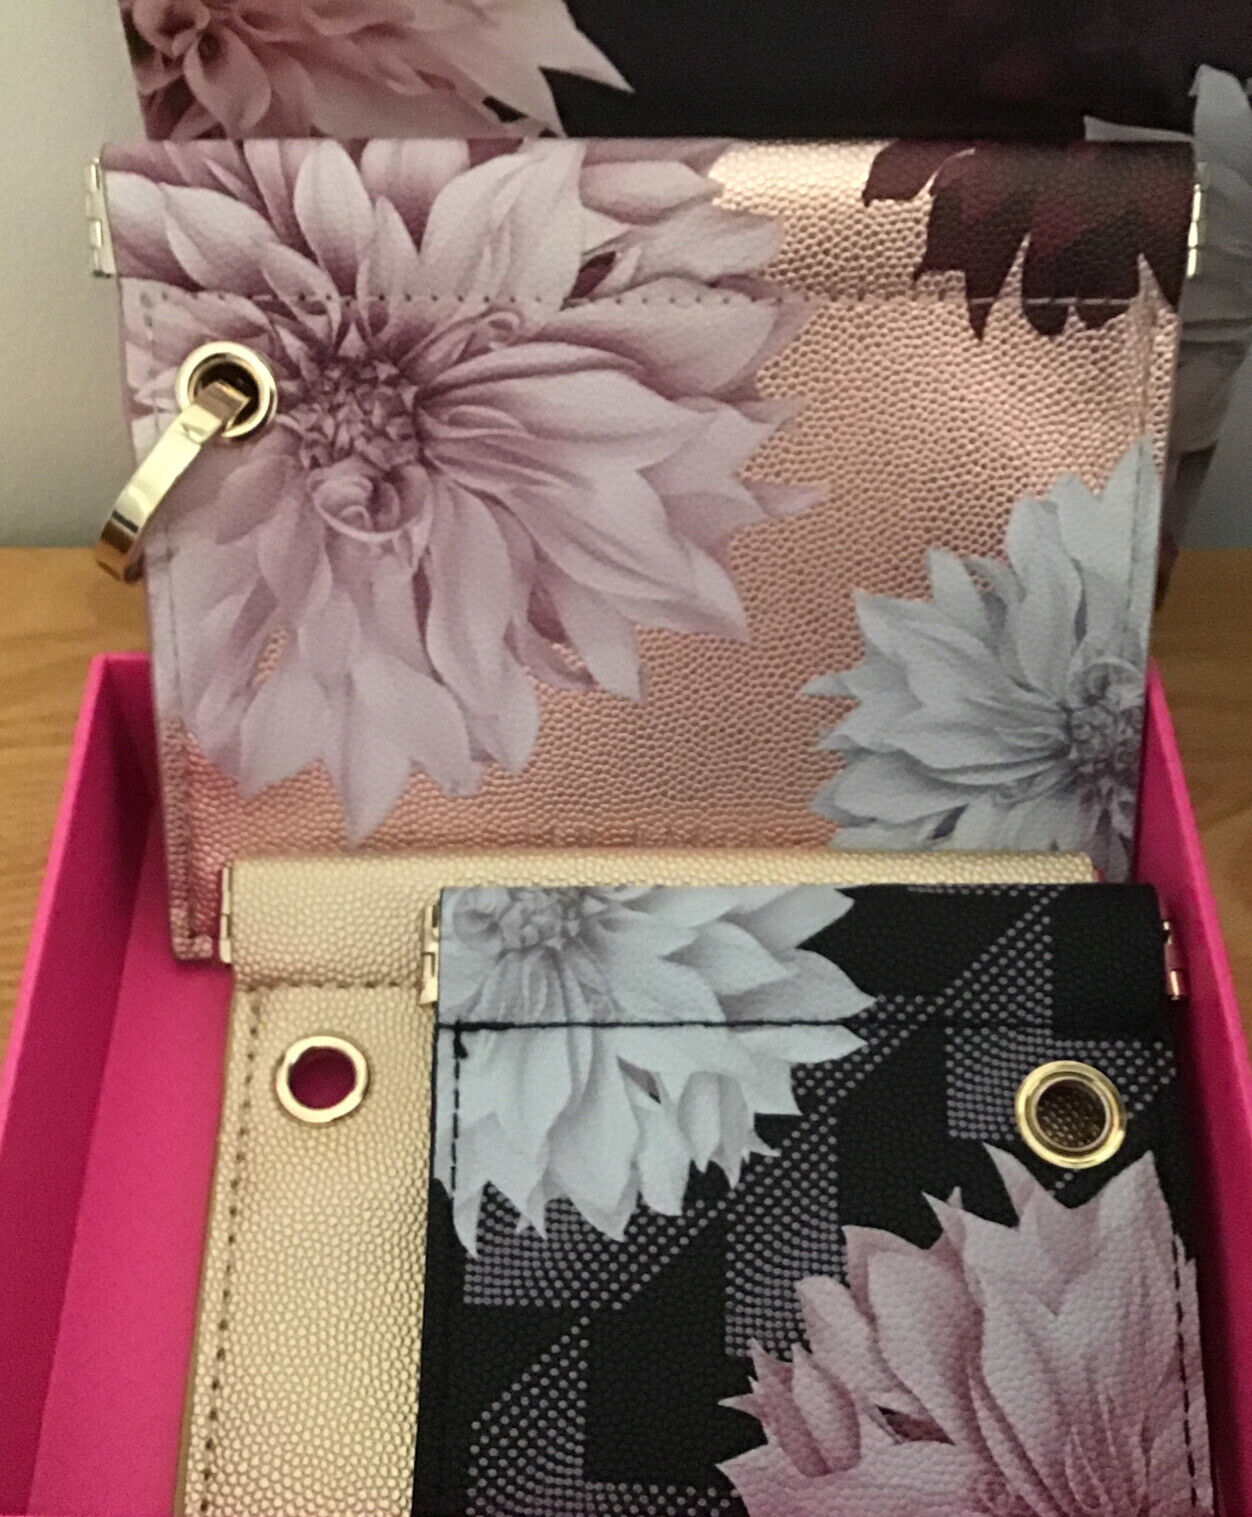 New Ted Baker pouches Jewellery money clove print black rose gold floral Set